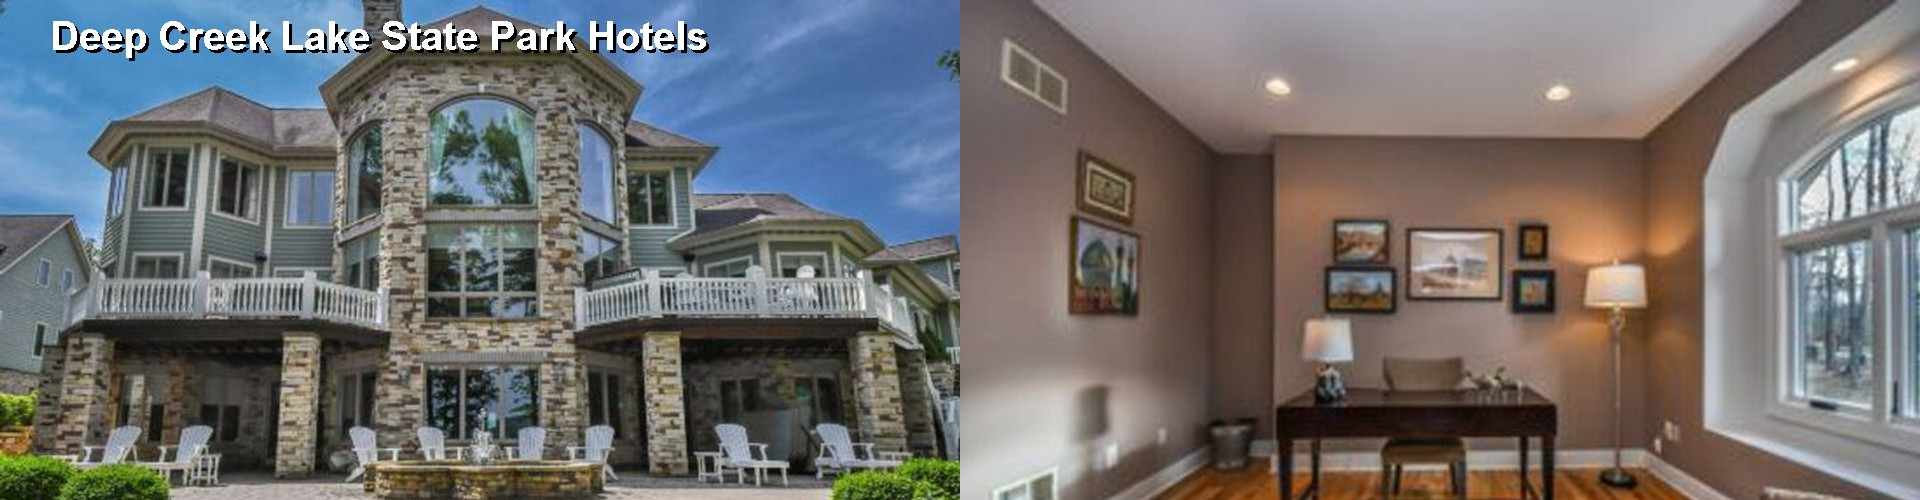 Hotels Near Deep Creek Lake State Park In Berland Md